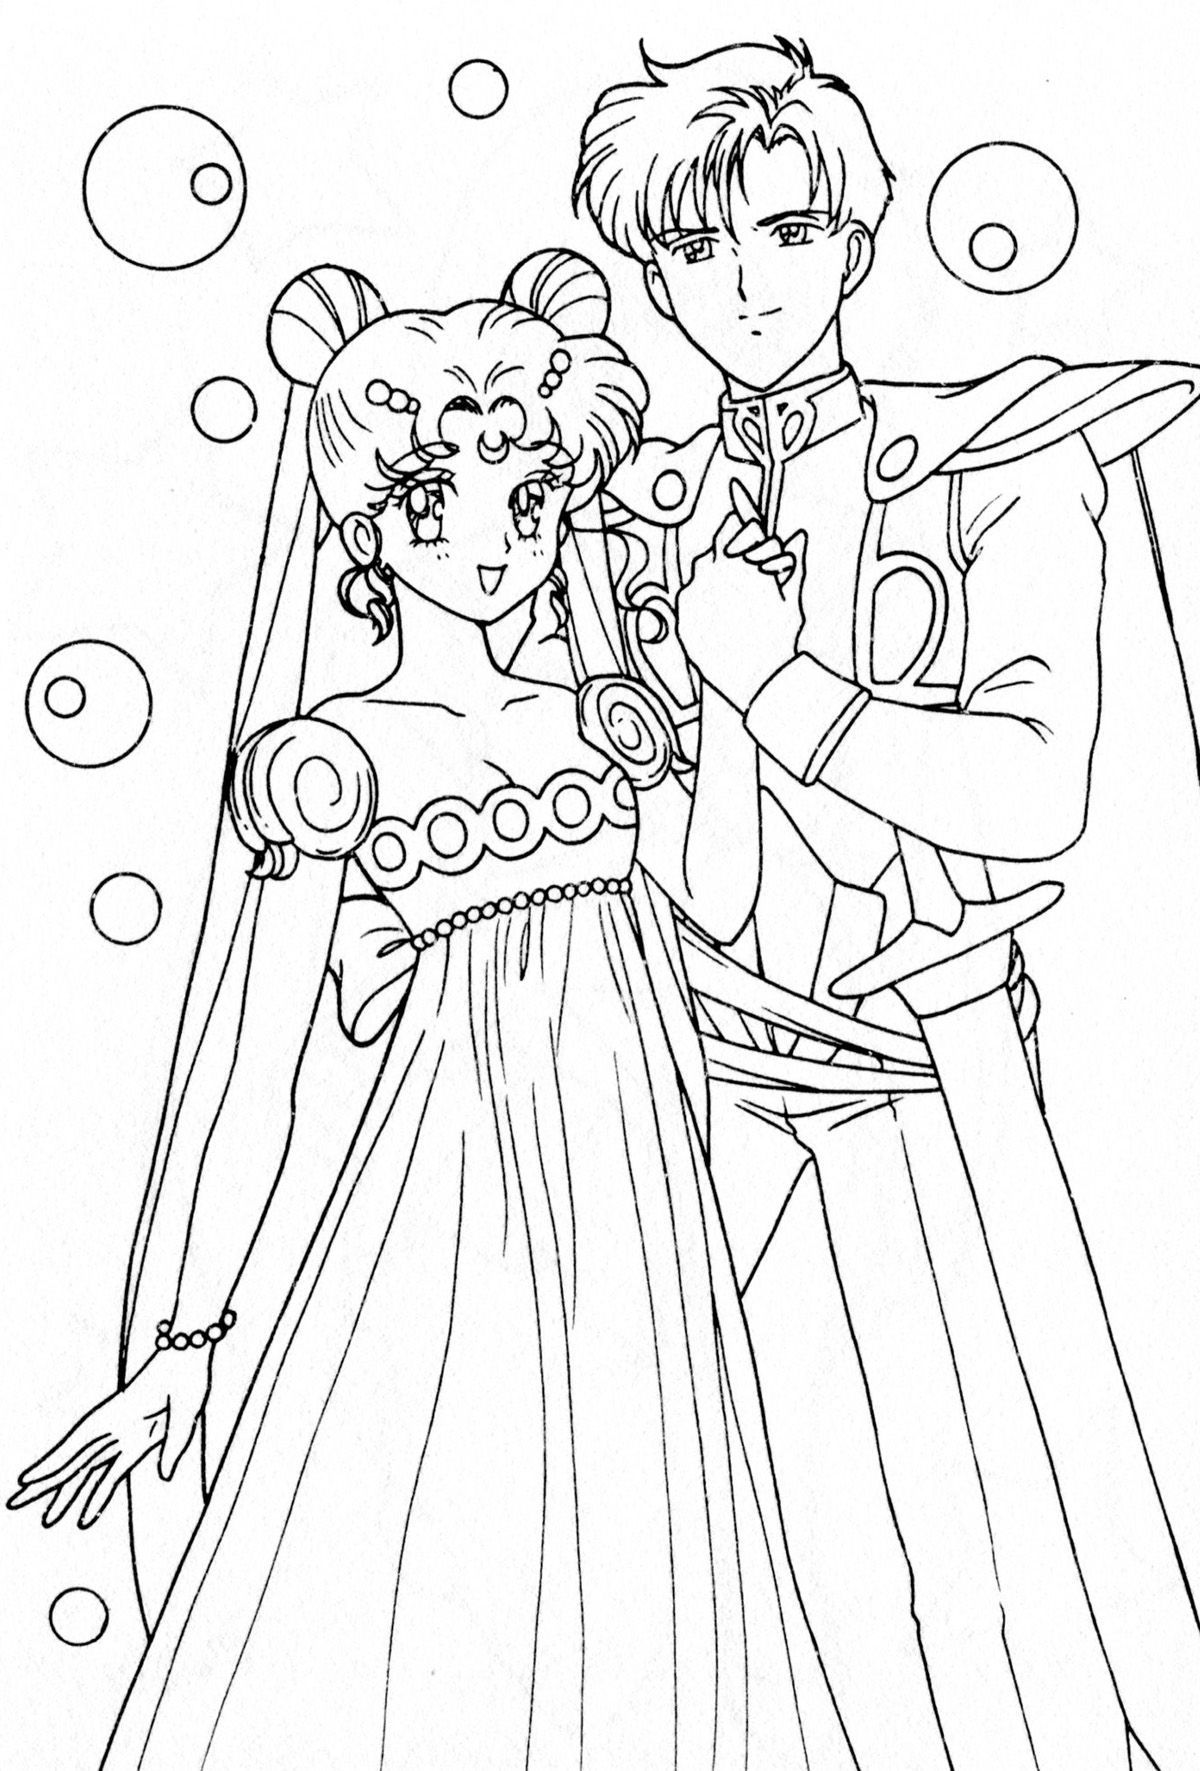 Princess Serenity And Prince Endymion Coloring Page Sailormoon Sailor Moon Coloring Pages Moon Coloring Pages Wedding Coloring Pages